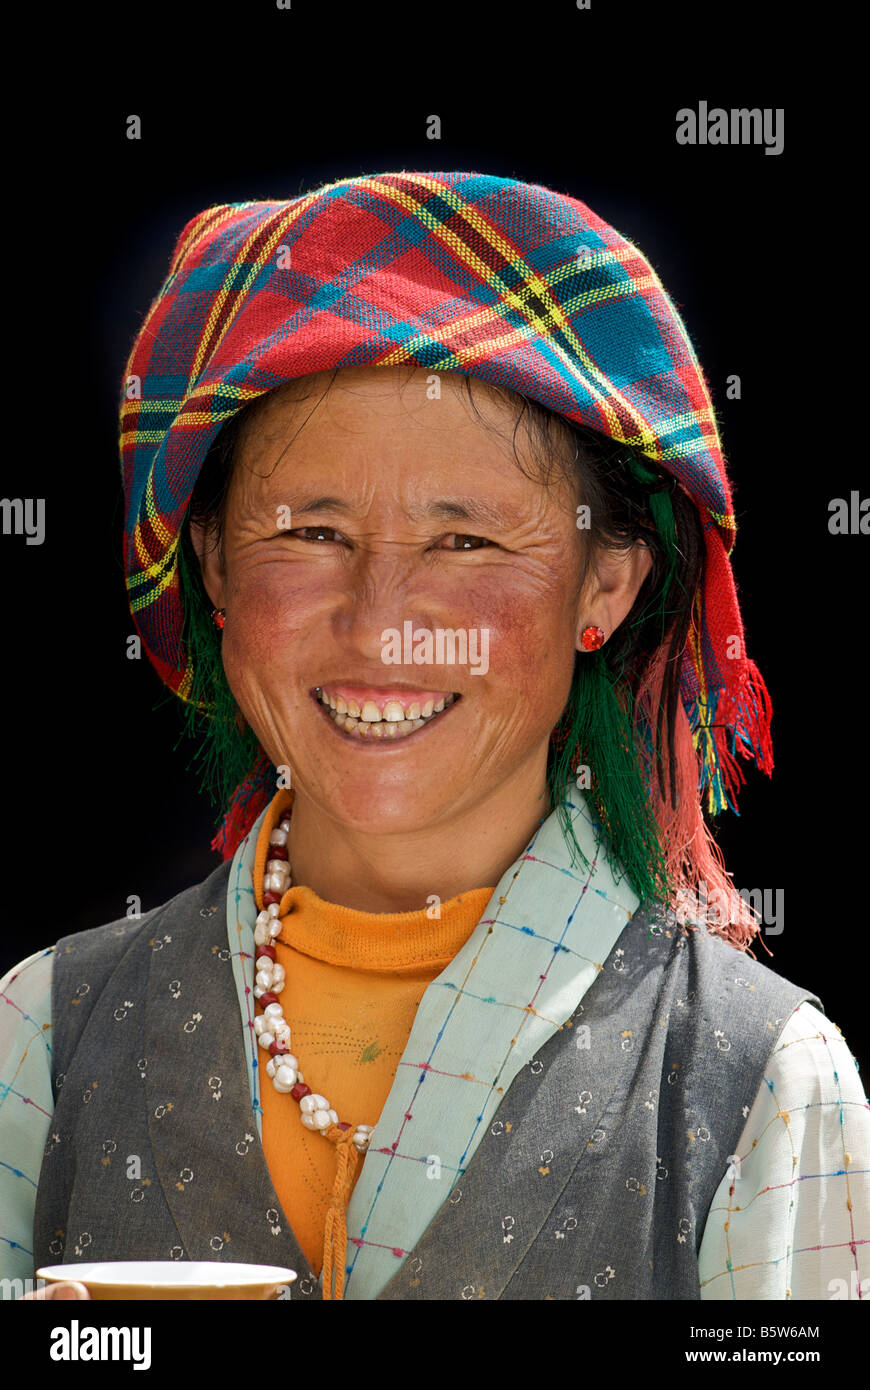 Friendly Tibetan woman. Smiling. Tibet - Stock Image